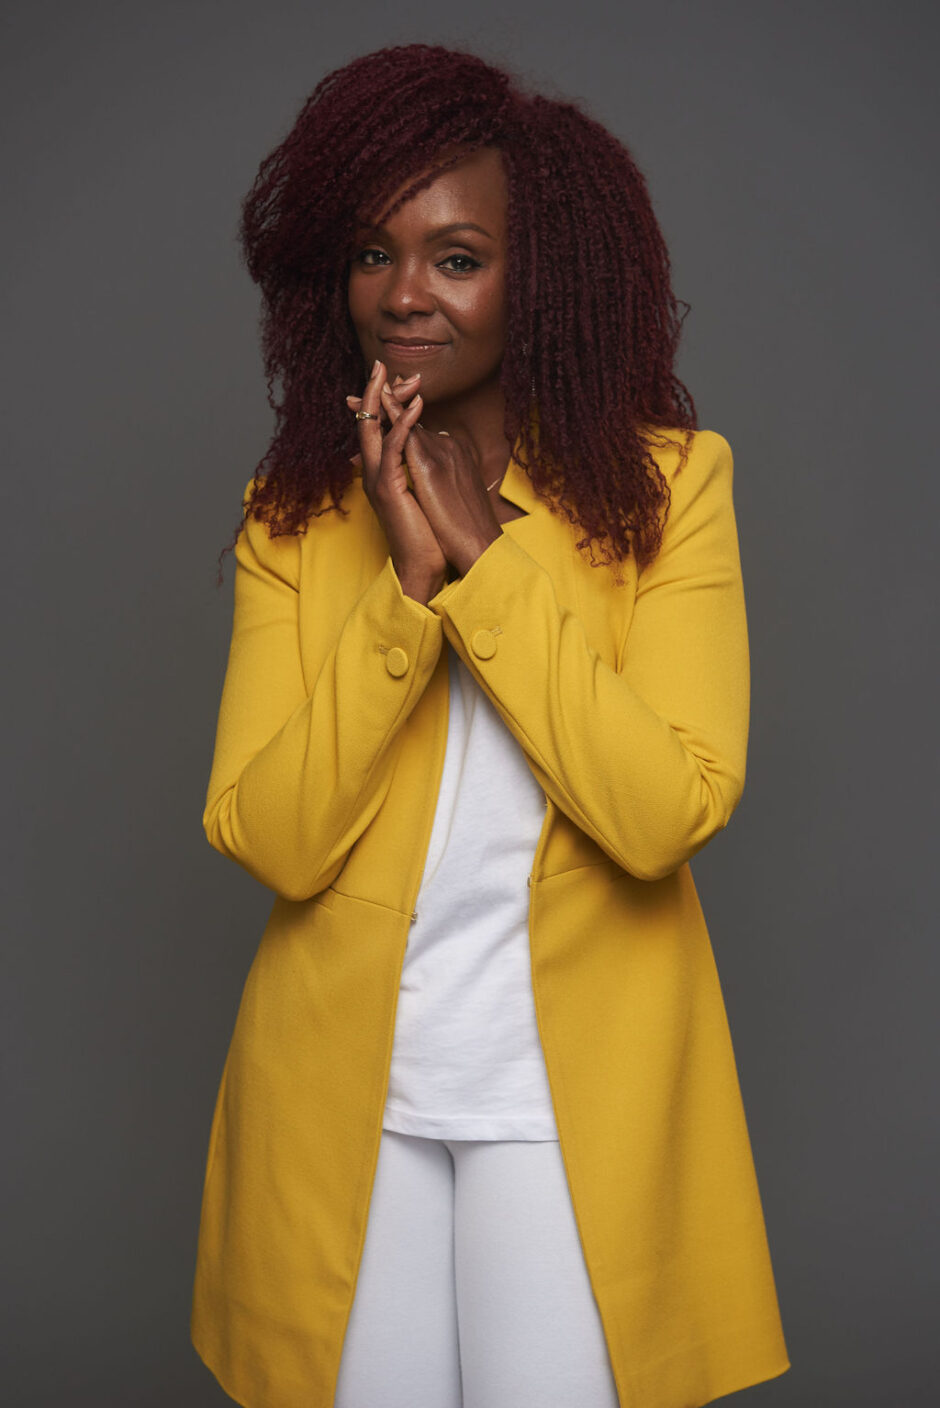 rha goddess-professional styling-yellow blazer-sheldon botler photography-wear who you are-kazi creative